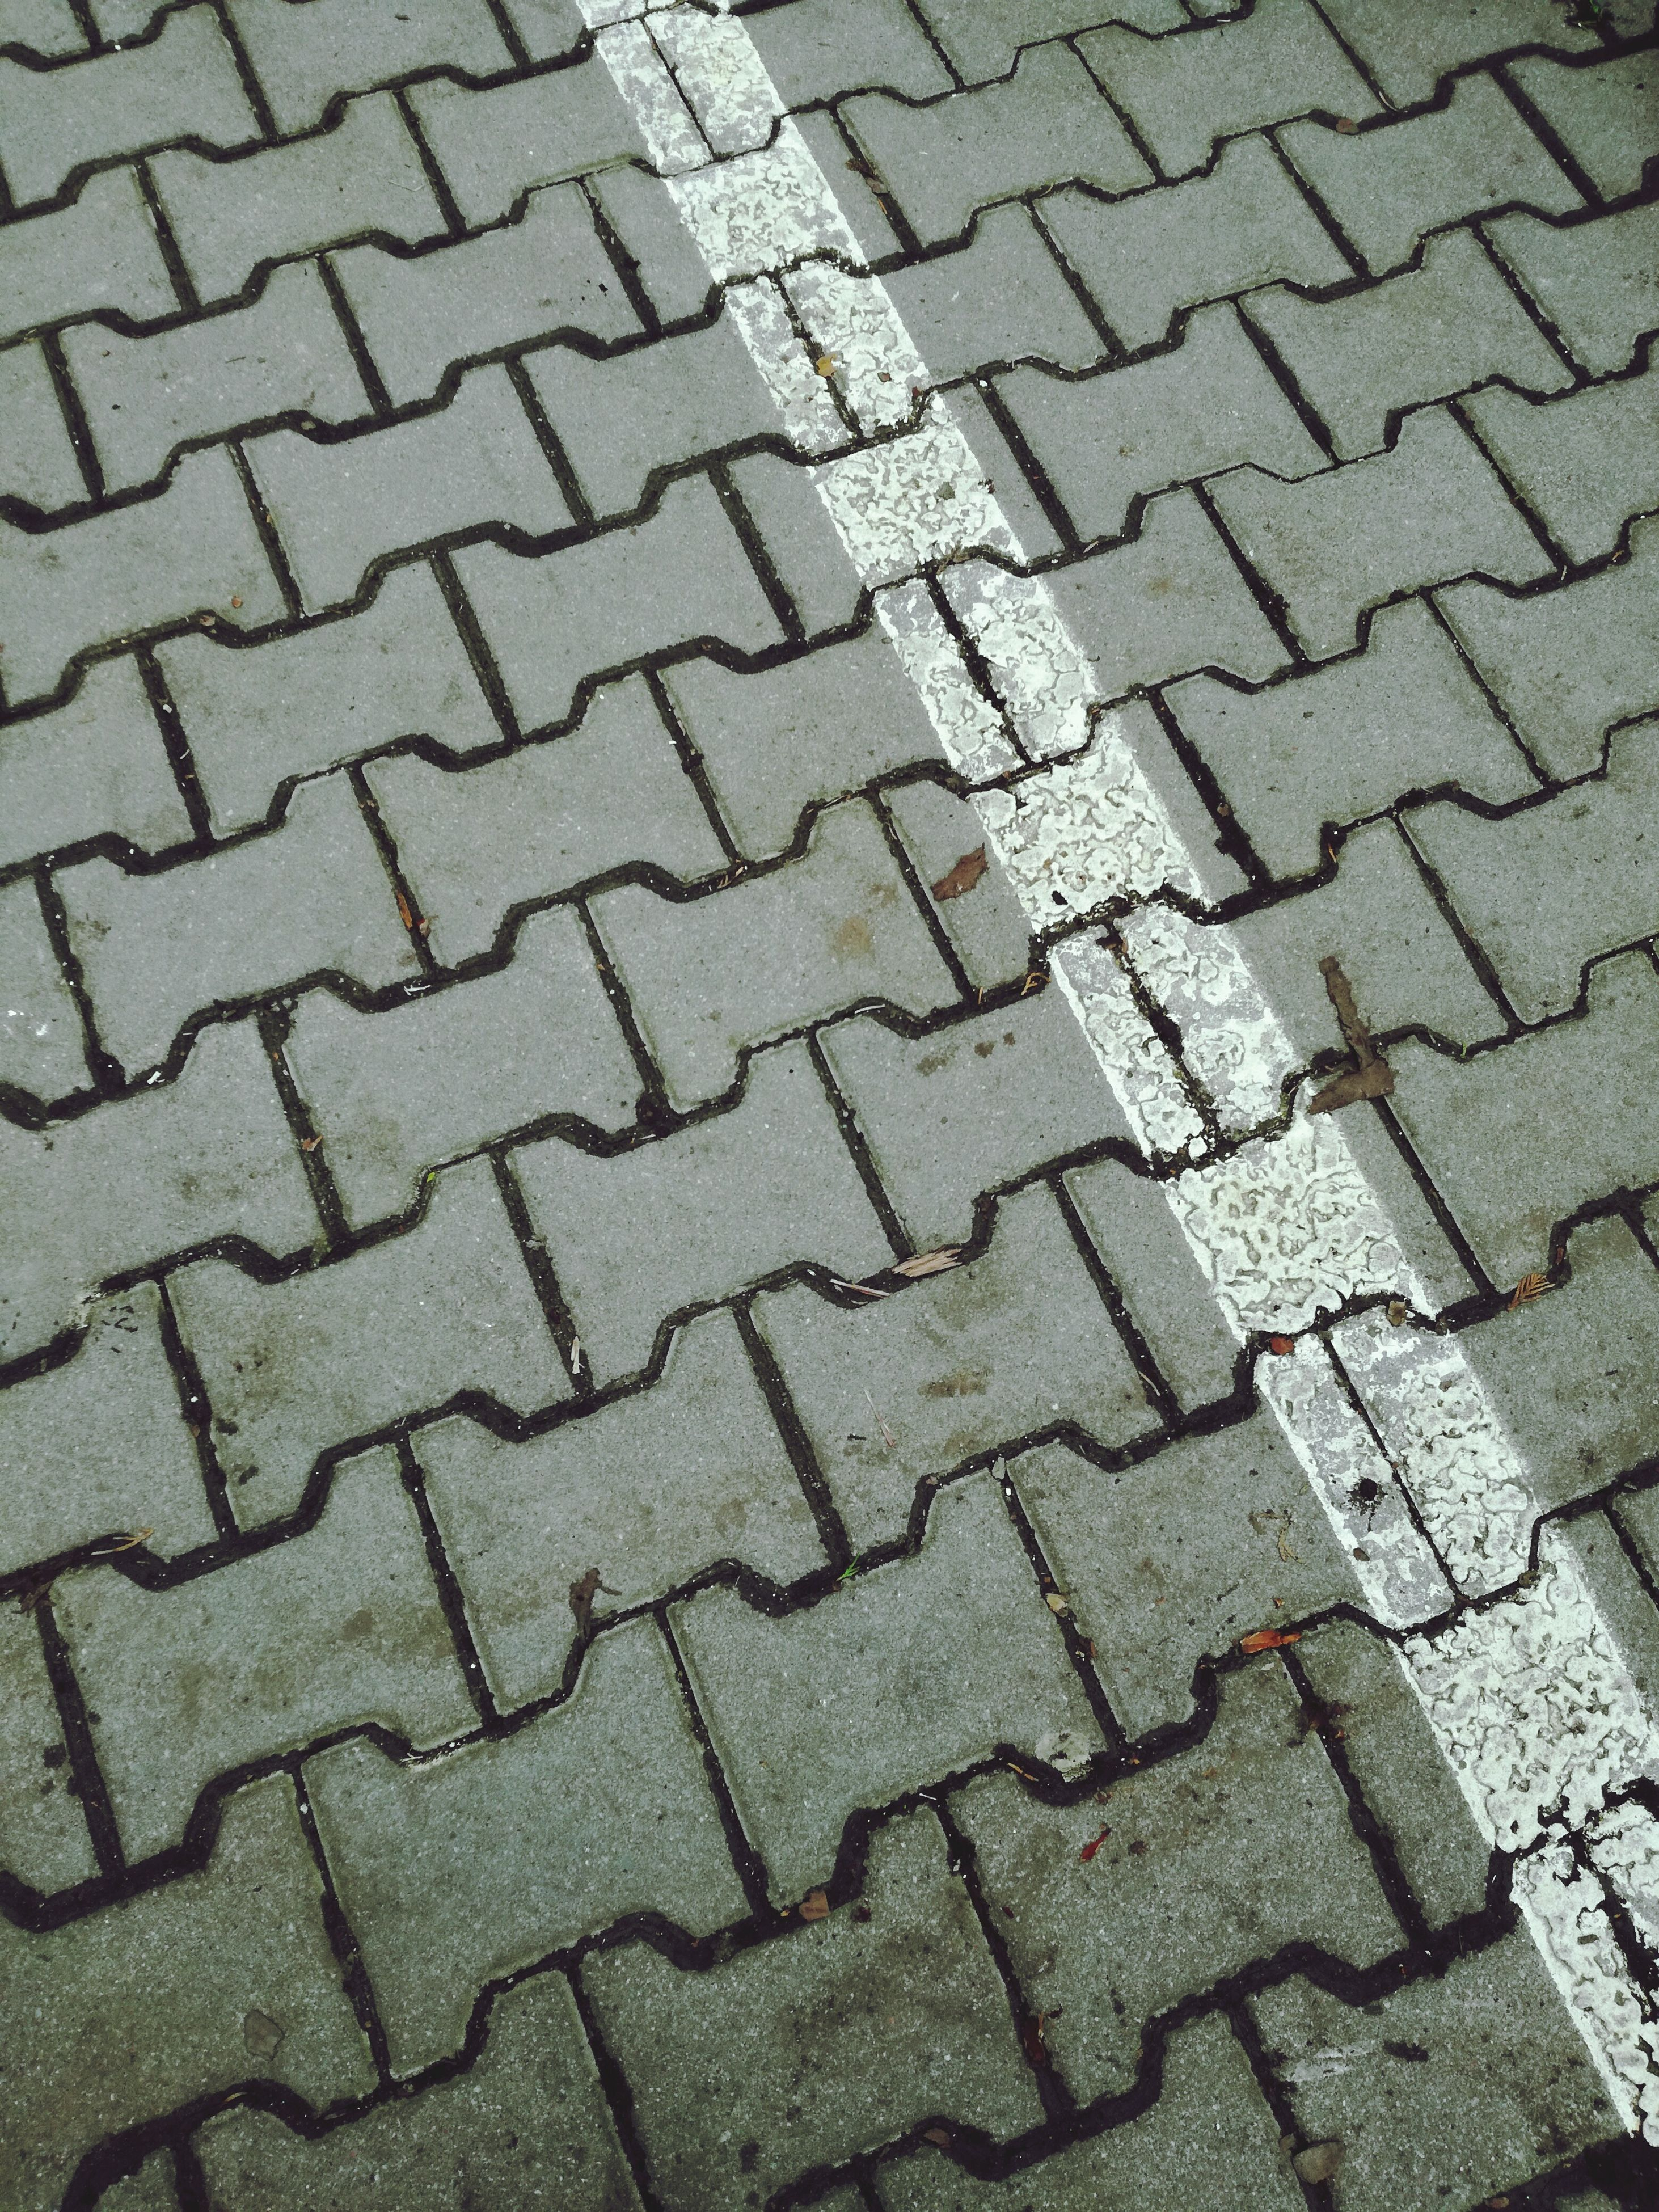 full frame, backgrounds, pattern, no people, textured, day, outdoors, stone tile, close-up